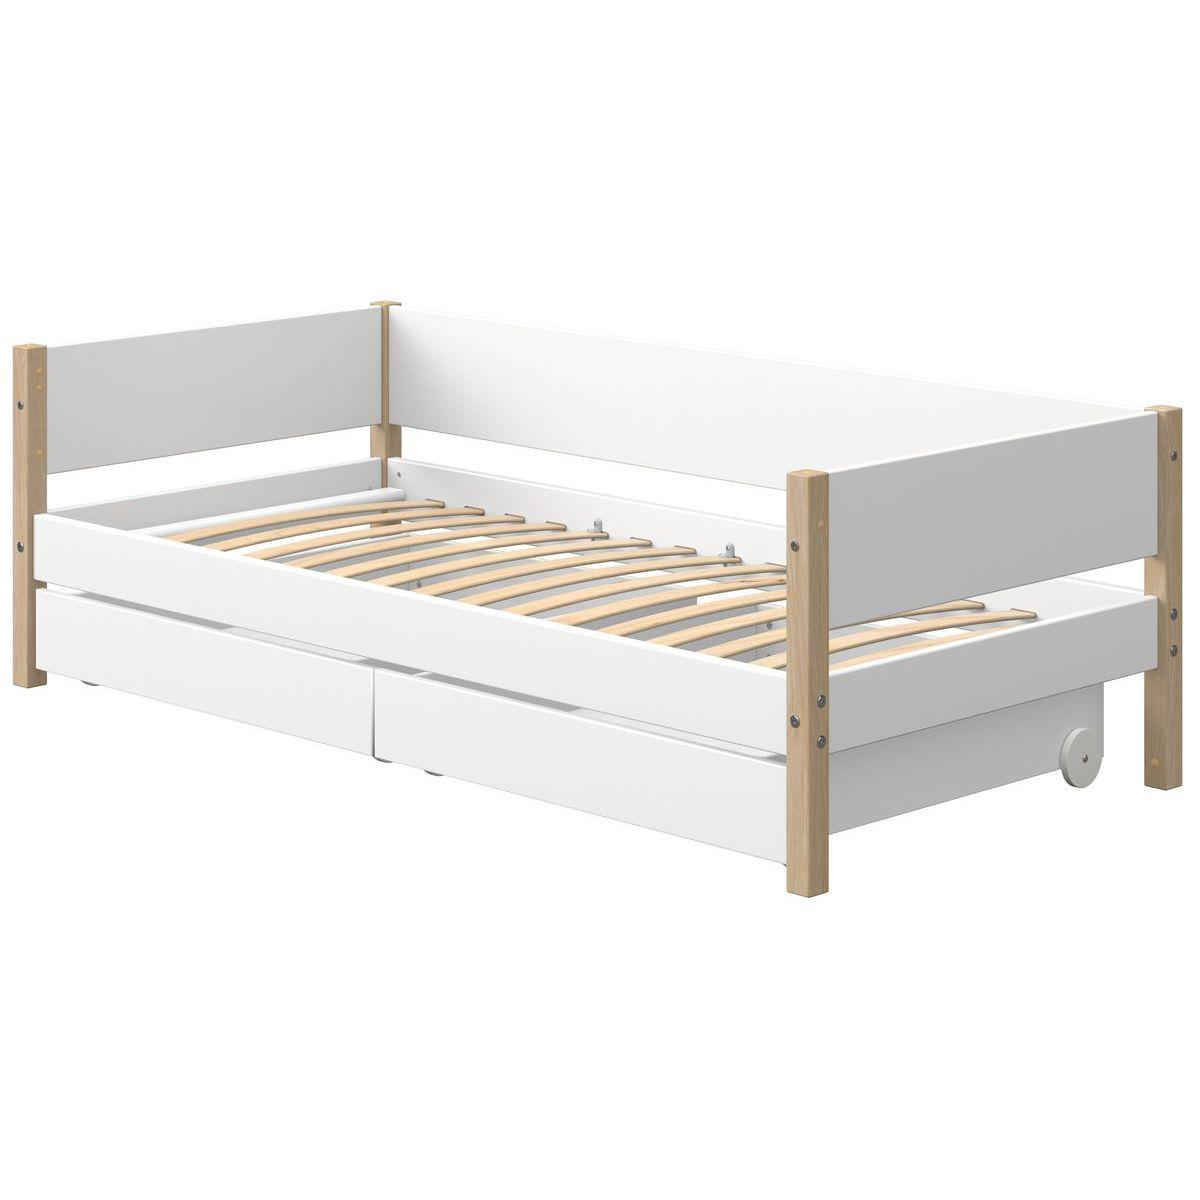 Cama-sofá 90x190cm 2 cajones NOR Flexa roble-blanco